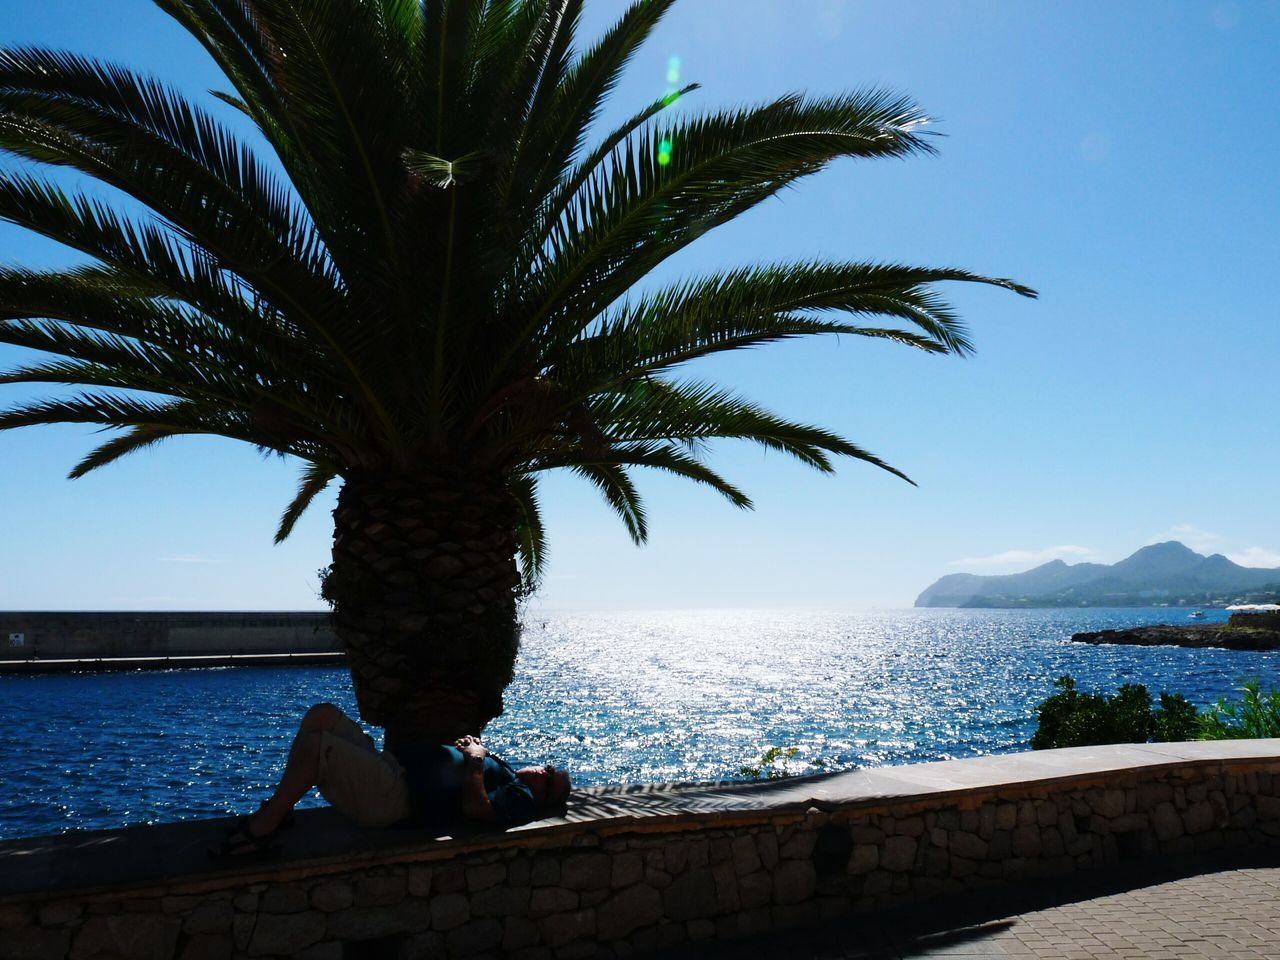 Man Sleeping On Retaining Wall By Palm Tree At Shore Against Sky